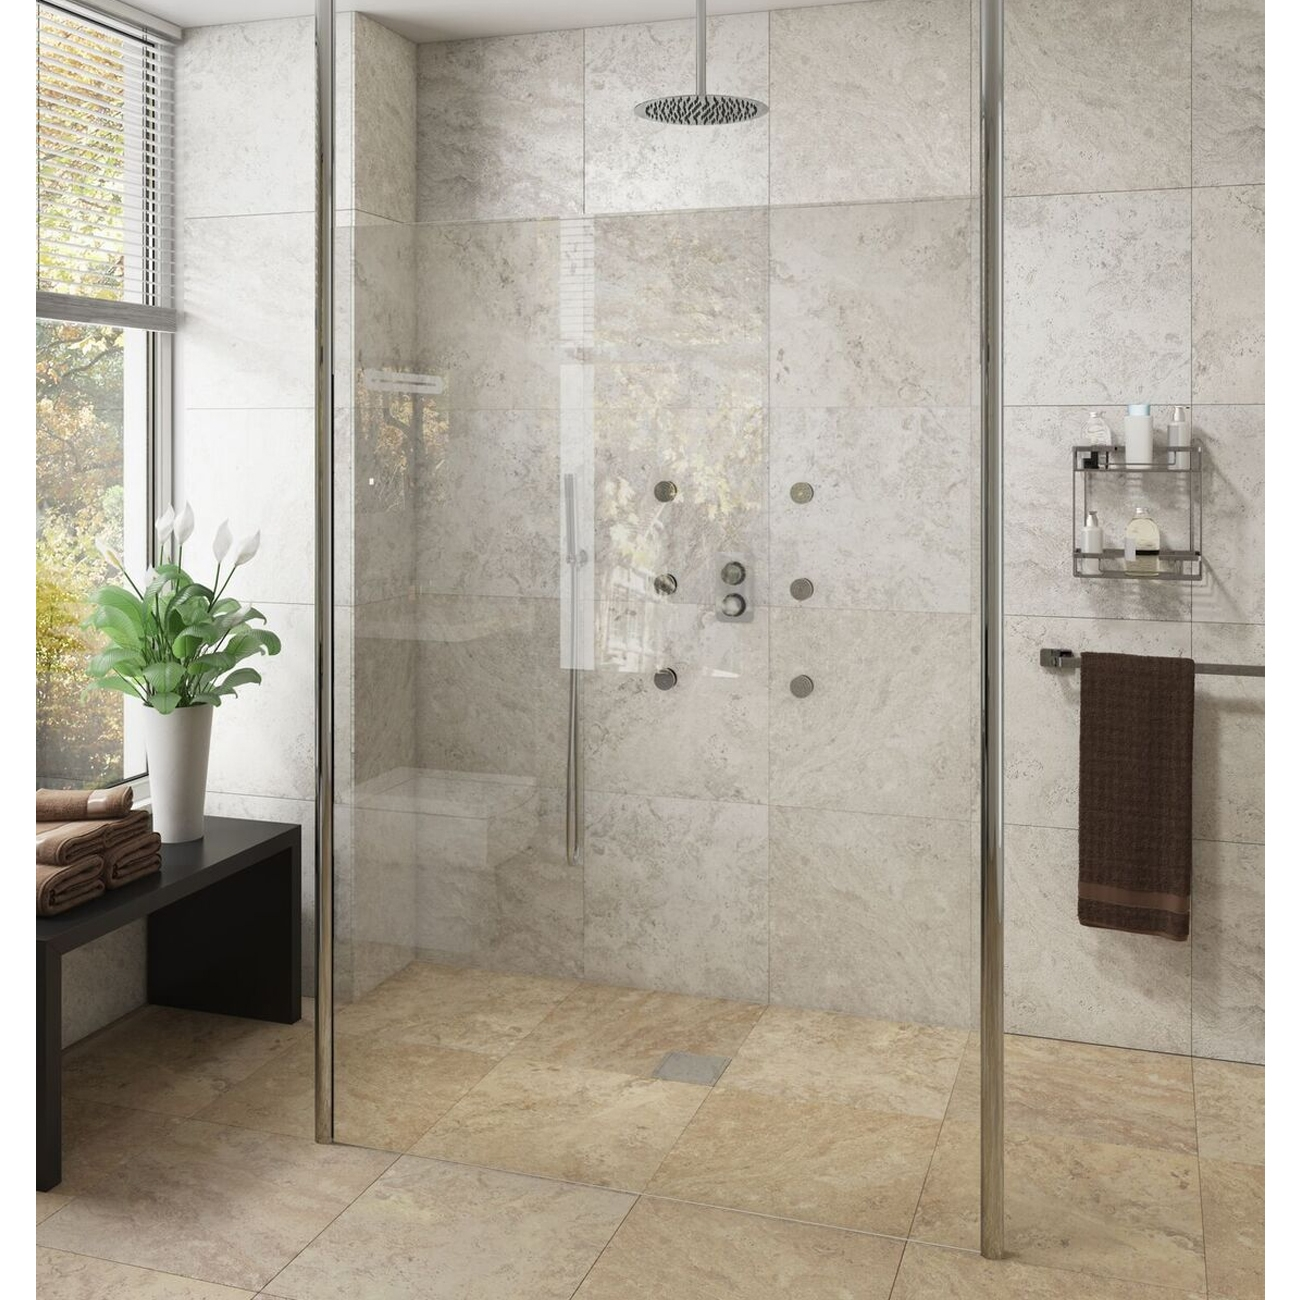 Cali Lana Free Standing Wet Room Screen 2000mm High x 900mm Wide - 10mm Glass Only